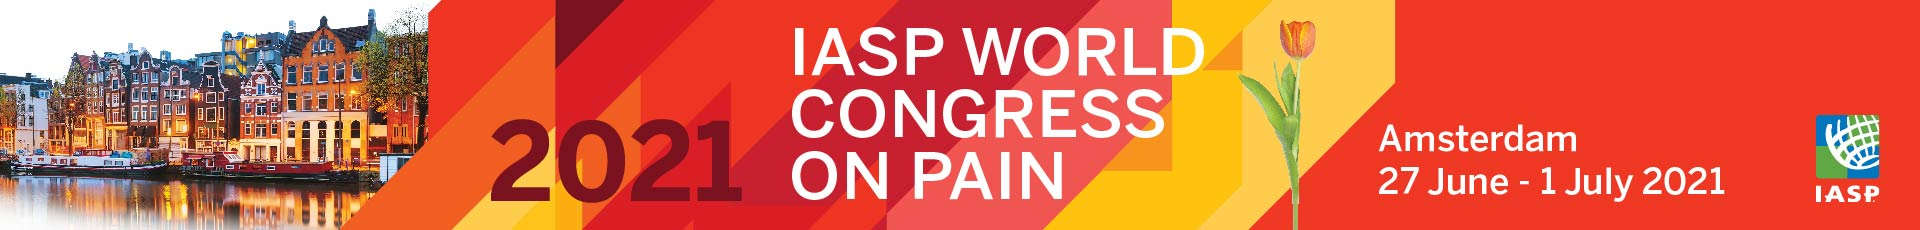 2021 World Congress on Pain - Posters Event Banner